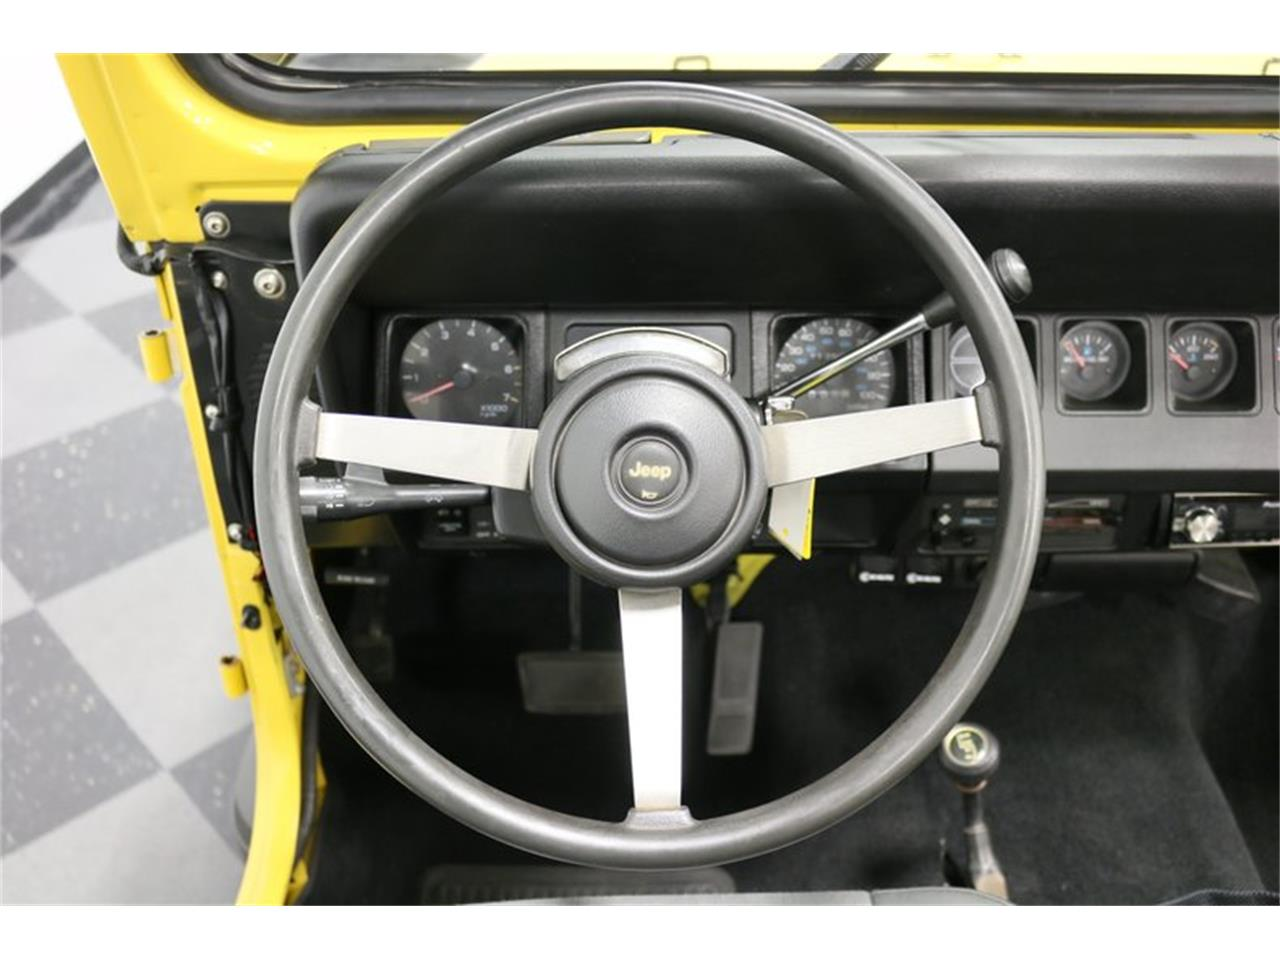 Large Picture of 1993 Jeep Wrangler located in Texas - $25,995.00 - P701